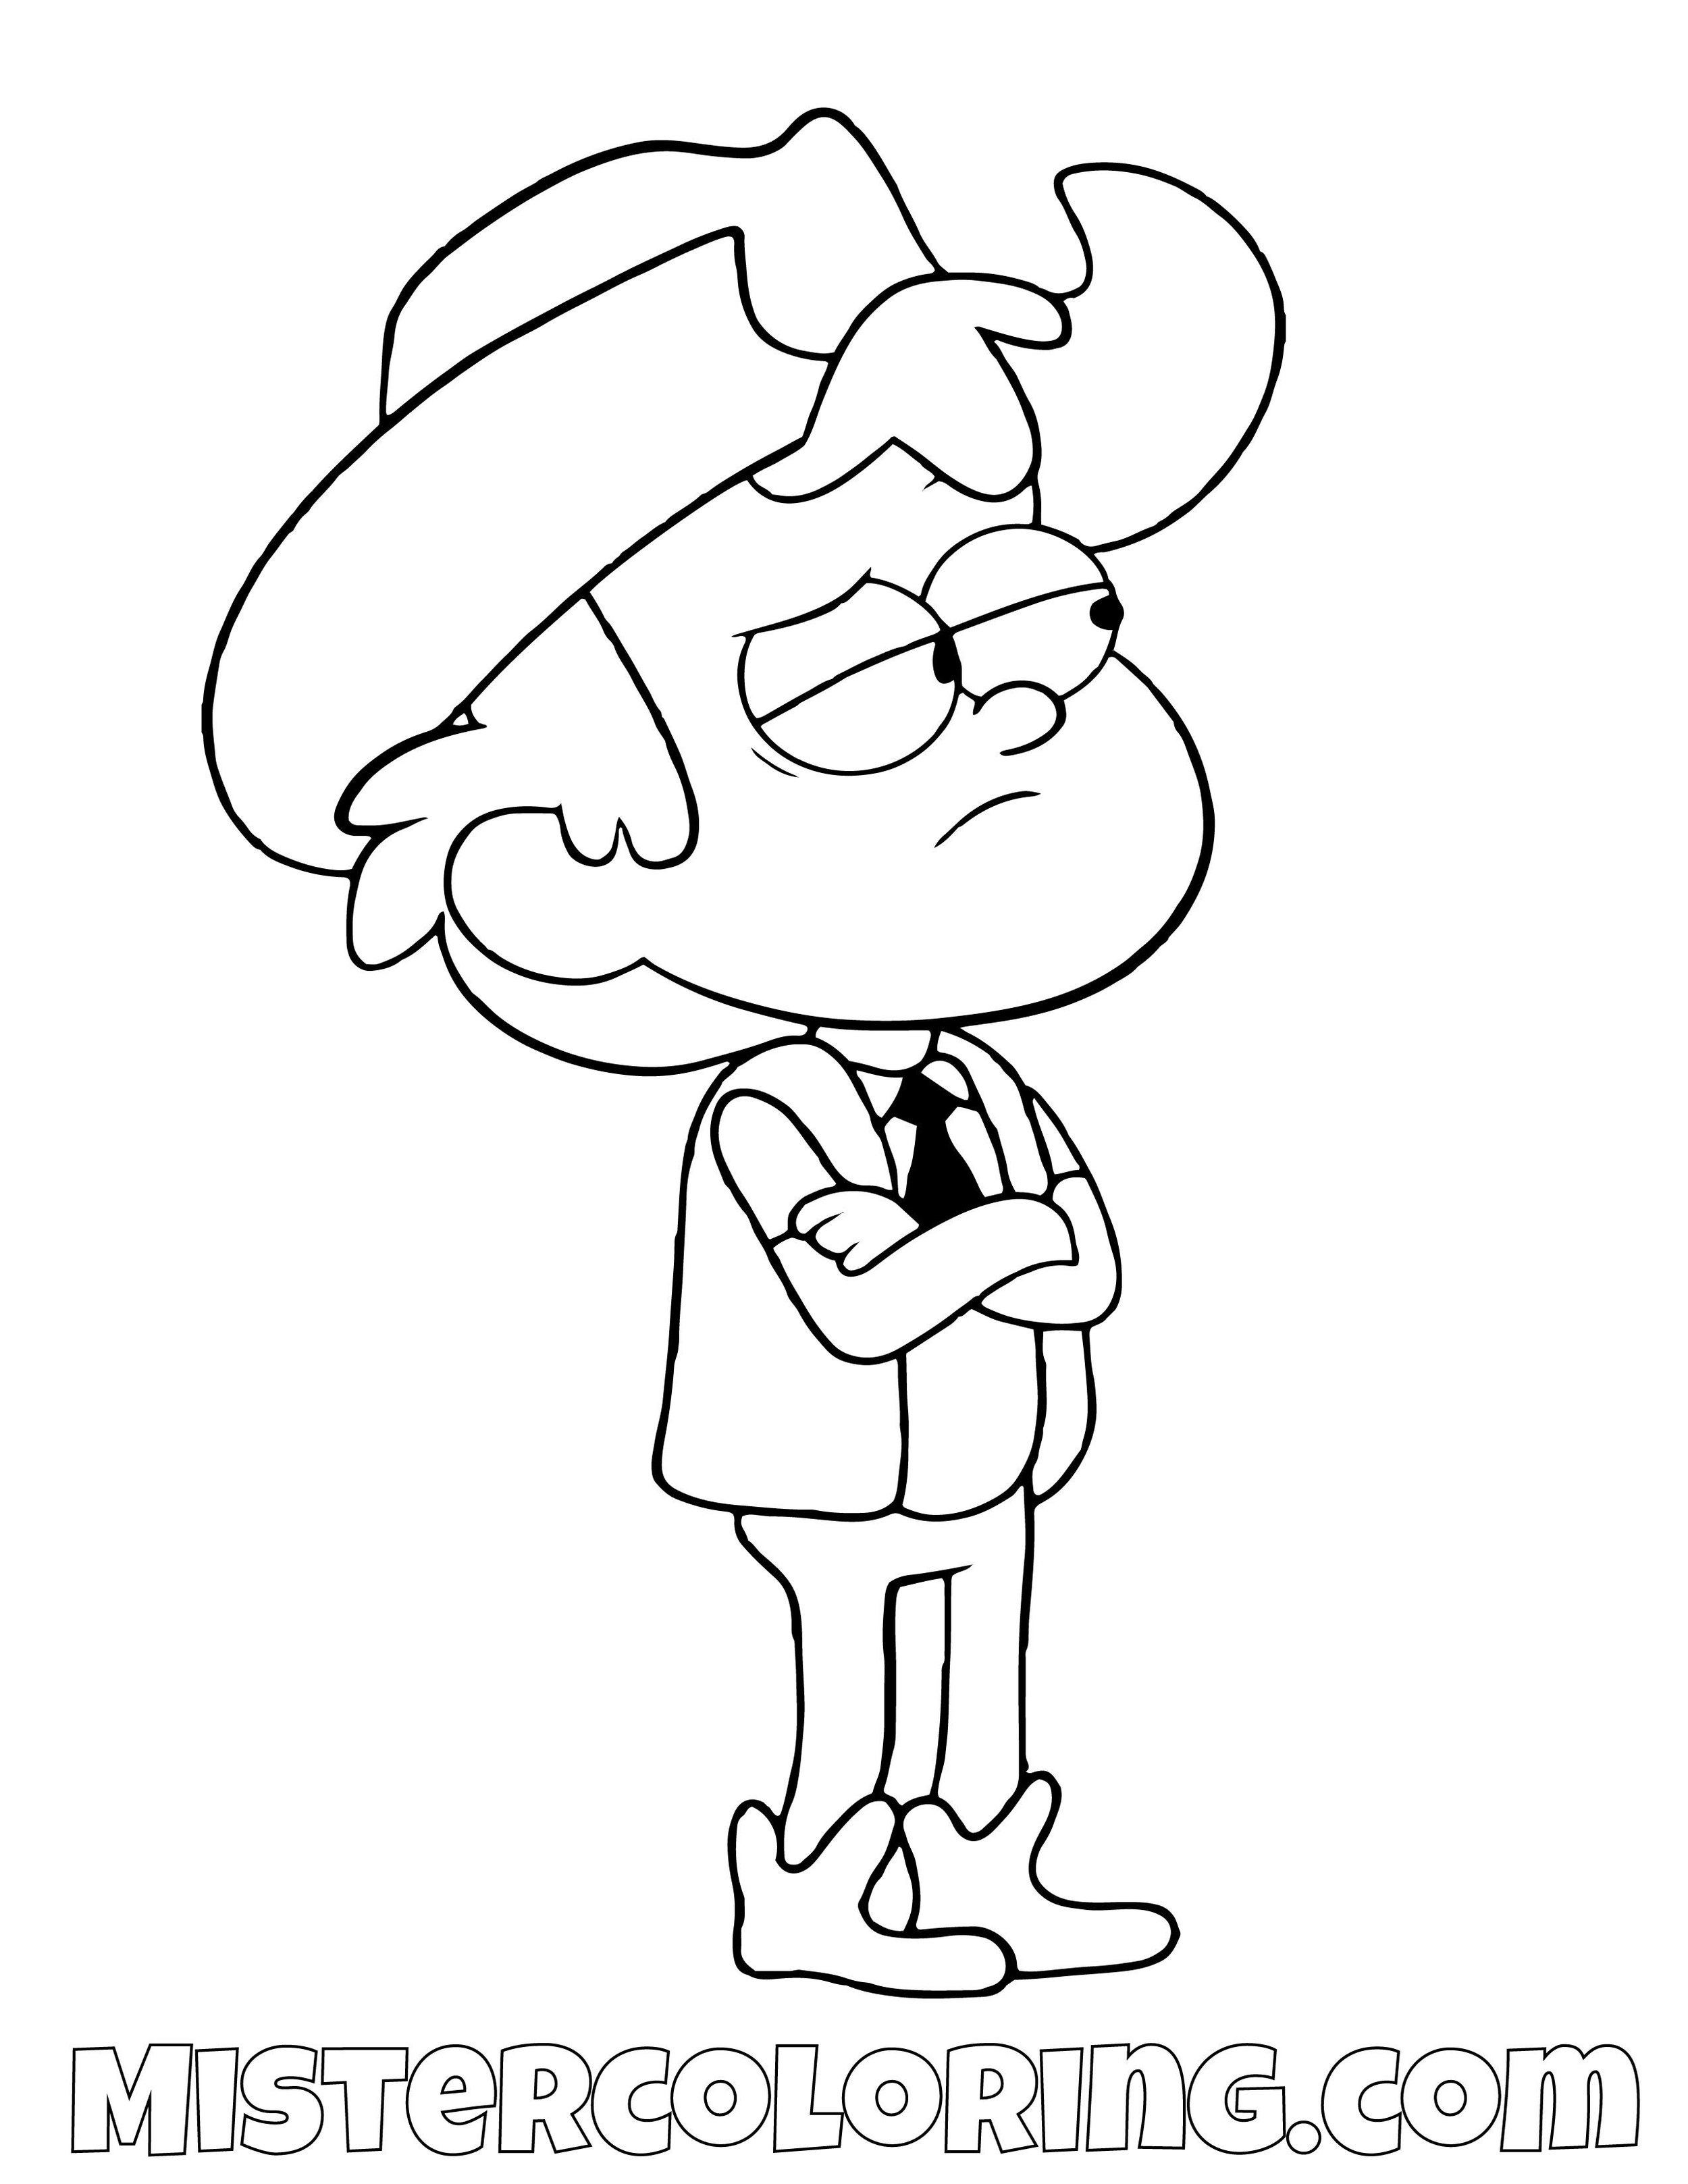 Dipper Pines Cowboy Gravity Falls Coloring Pages